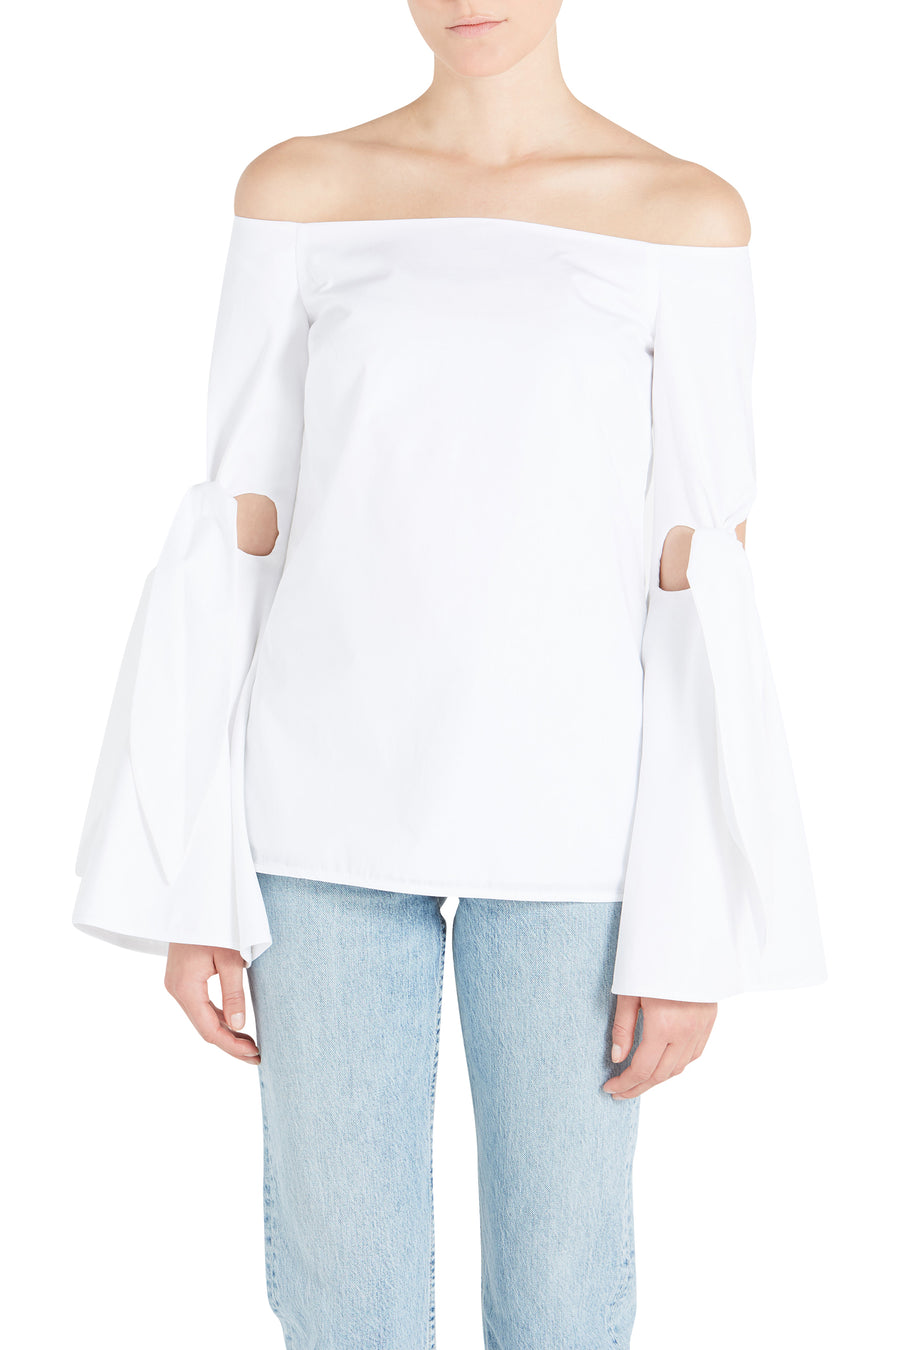 LOPEZ OFF THE SHOULDER SHIRT